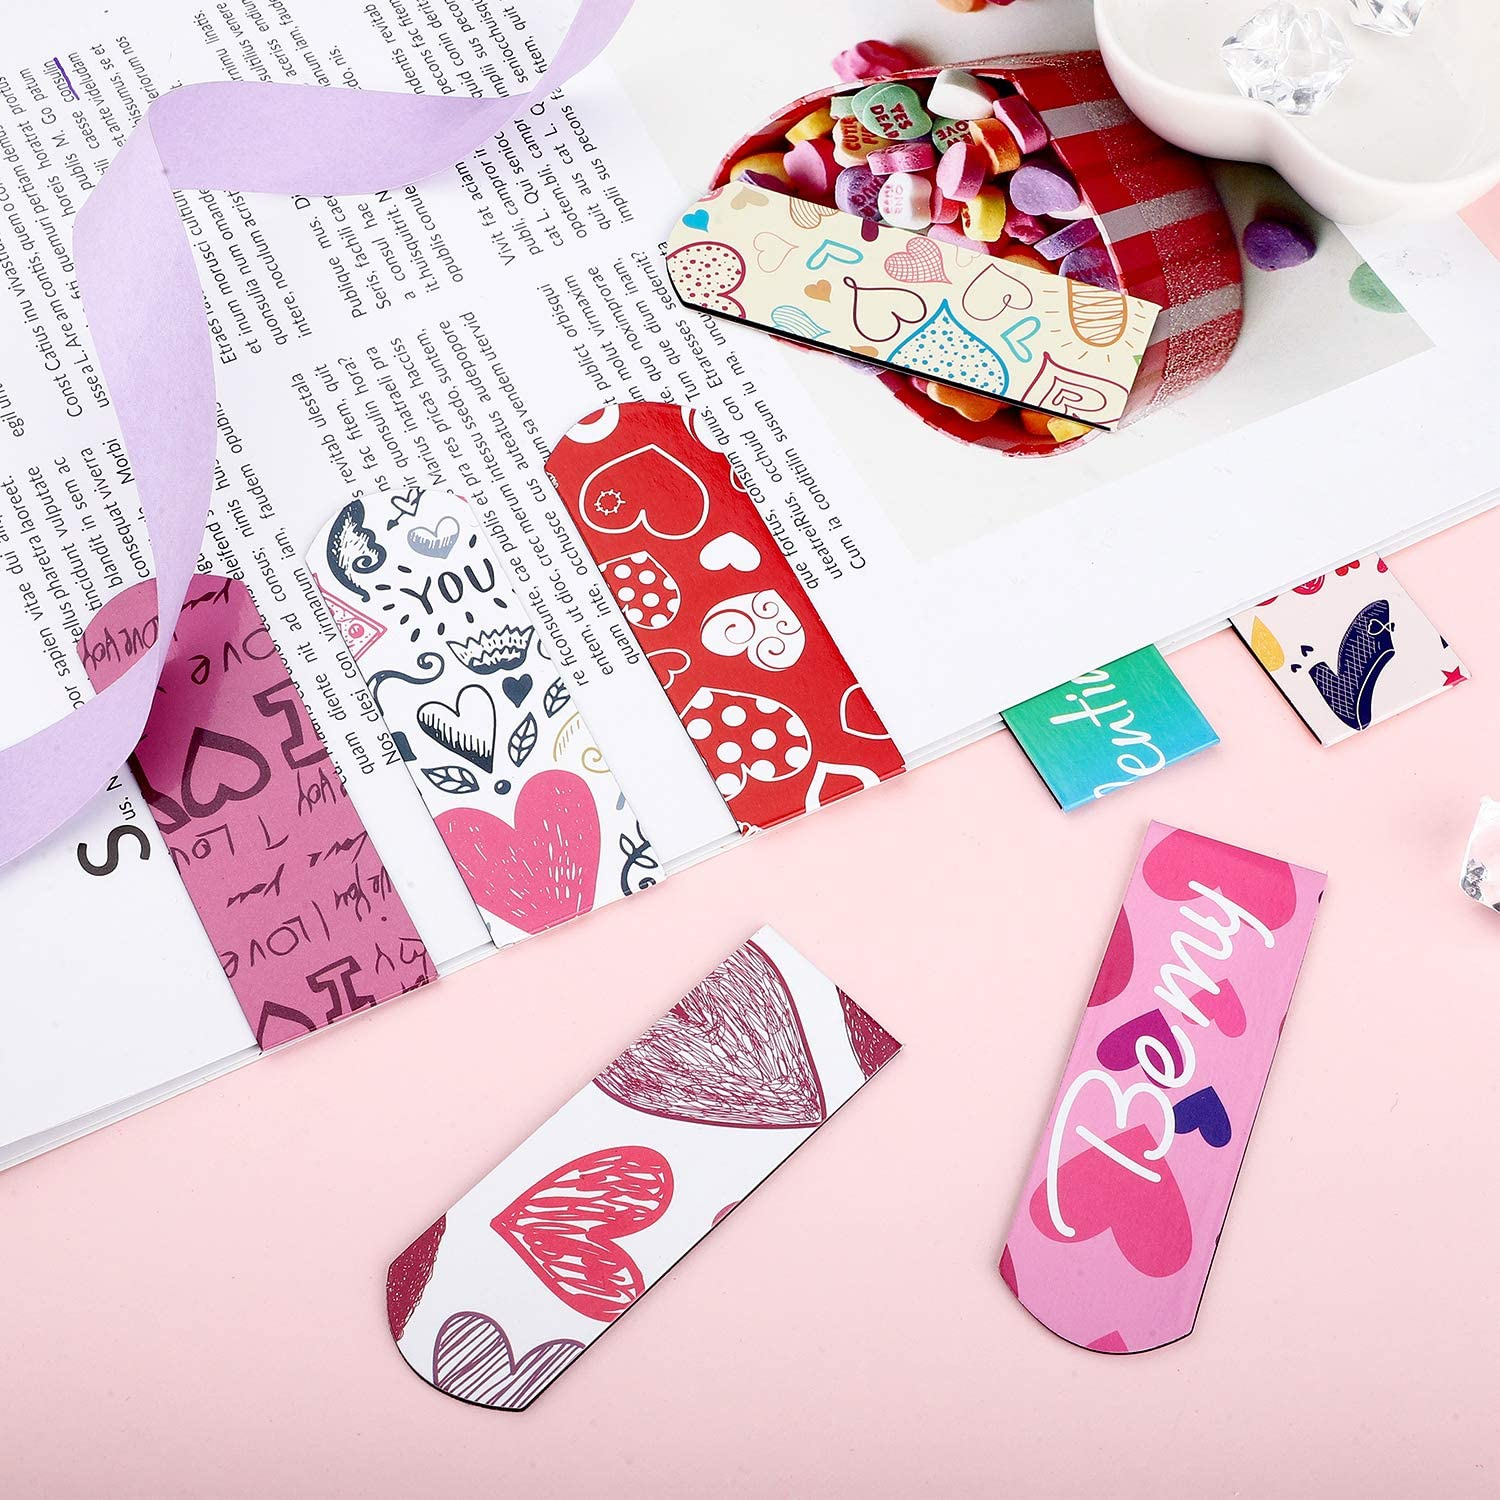 8 Styles 48 Pieces Valentines Day Magnetic Bookmark Cute Magnetic Page Markers for Valentines Day School Prizes